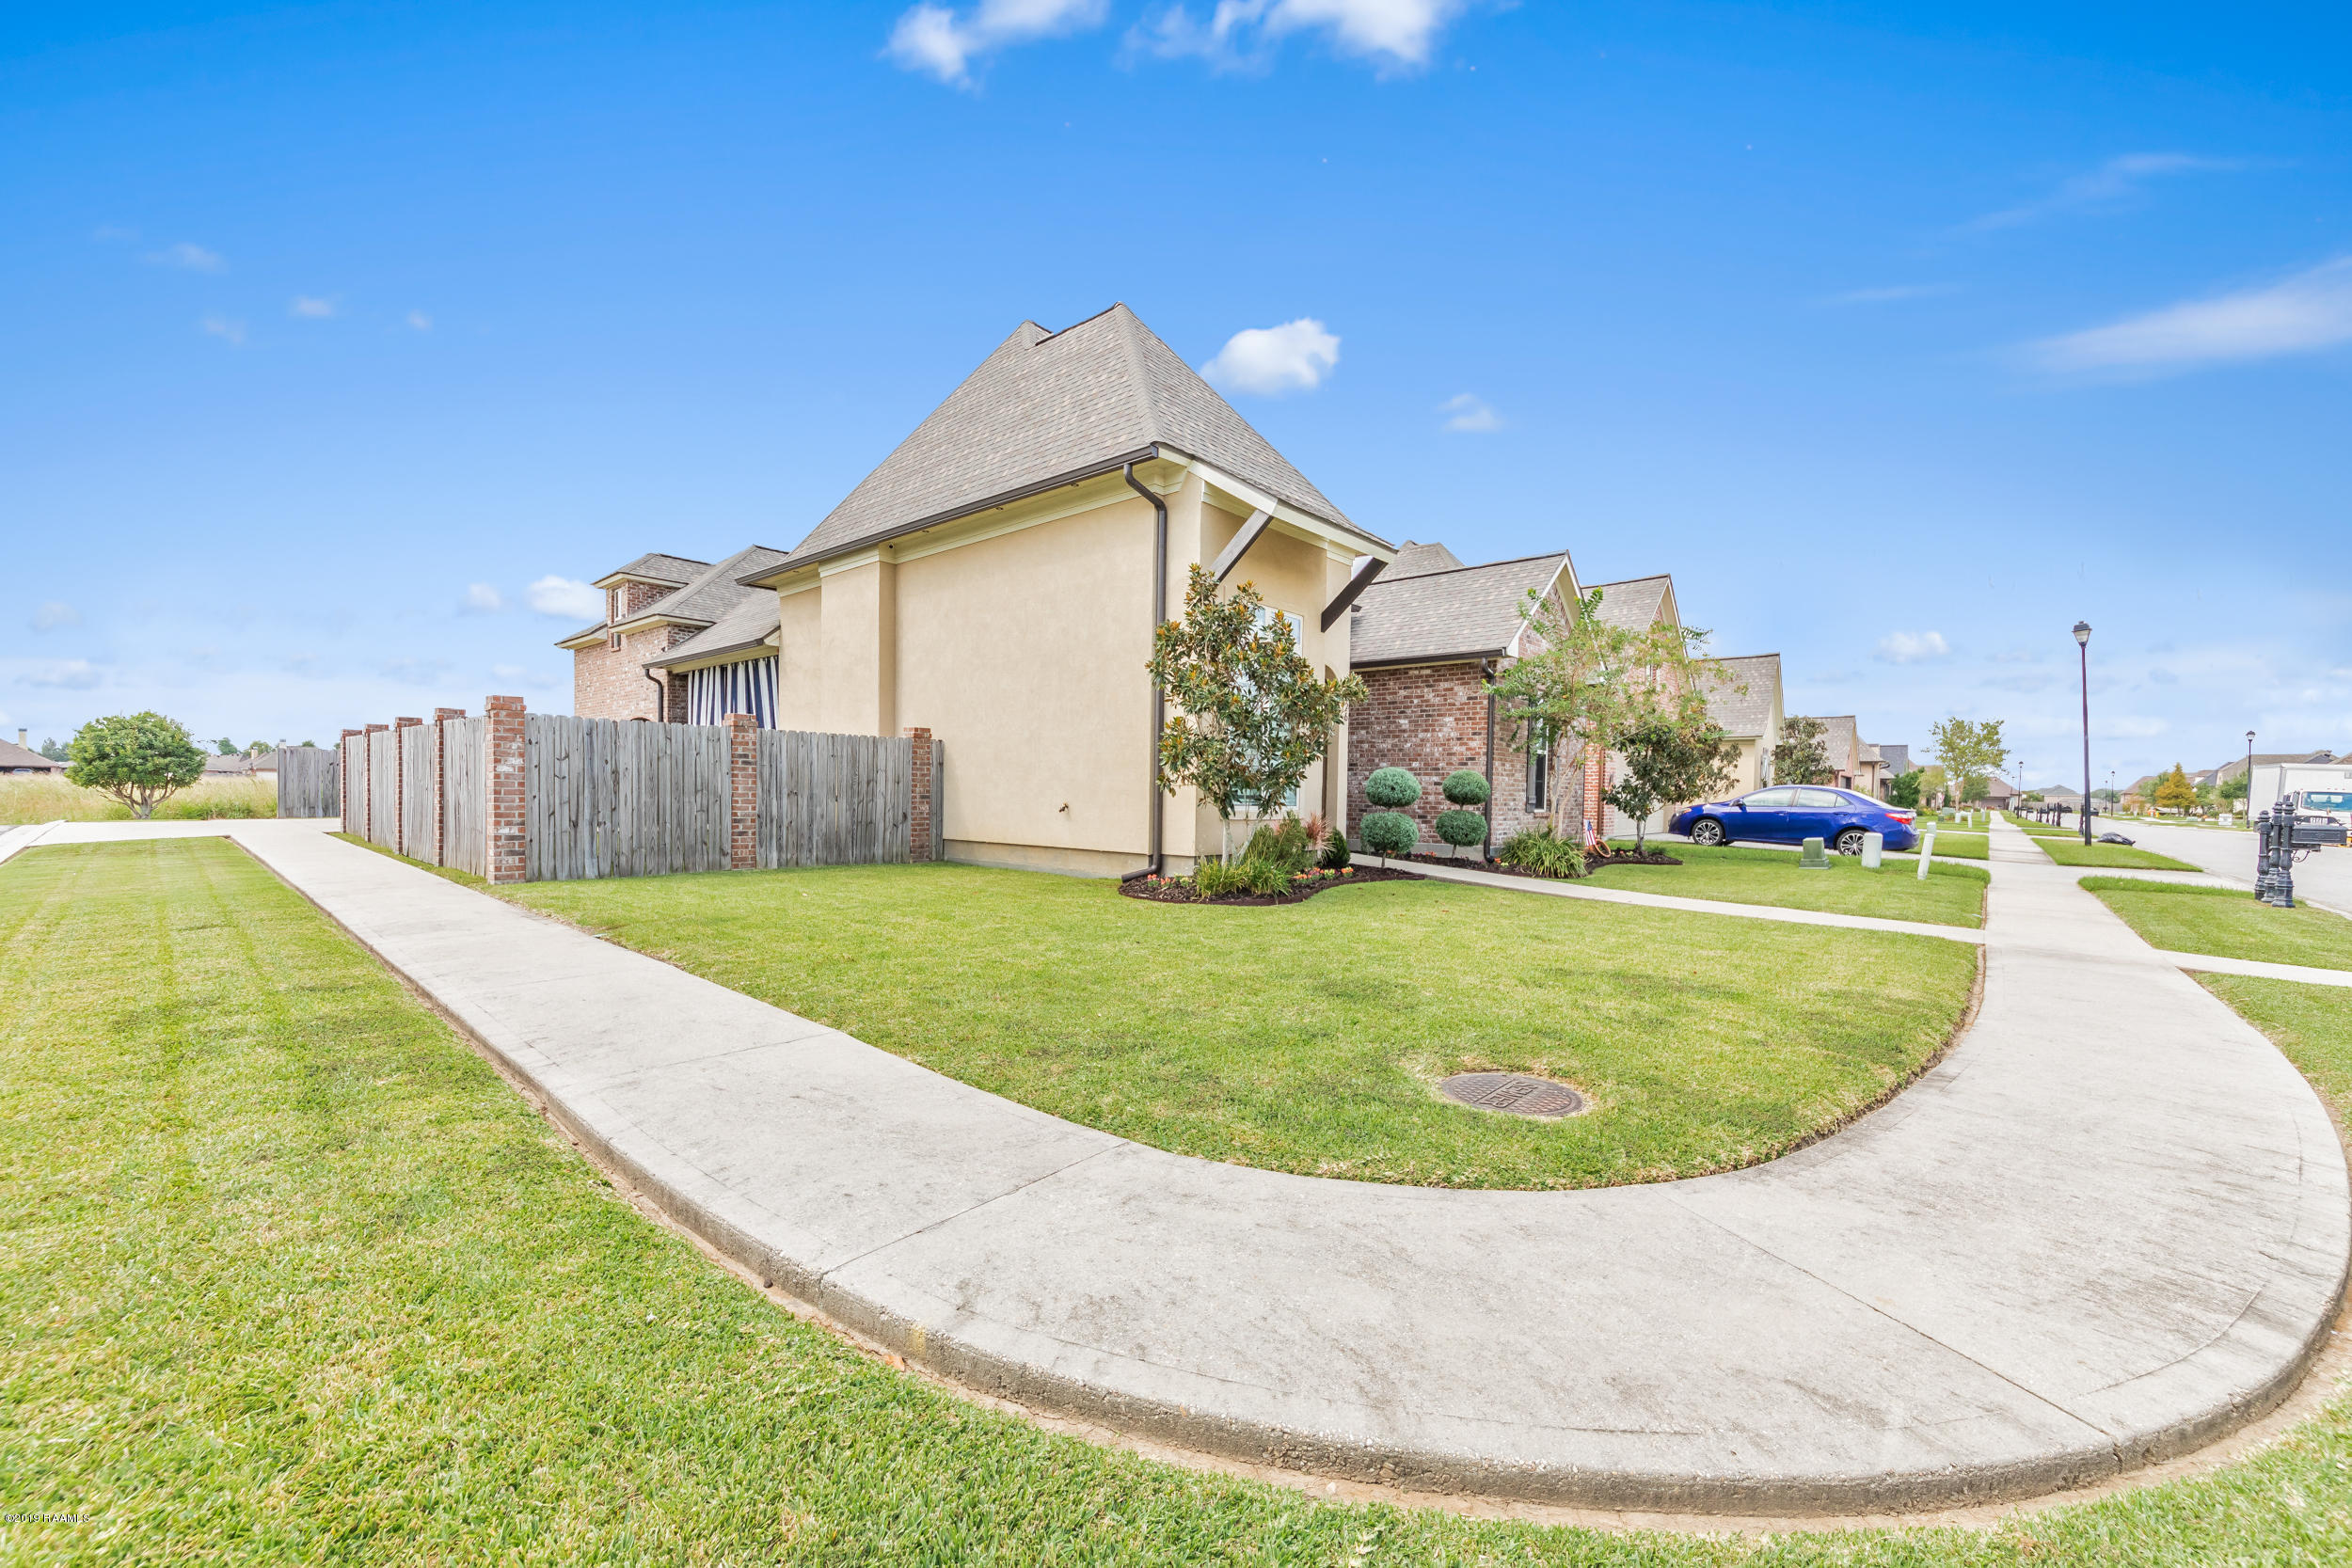 226 Bayou Parc Drive, Youngsville, LA 70592 Photo #4